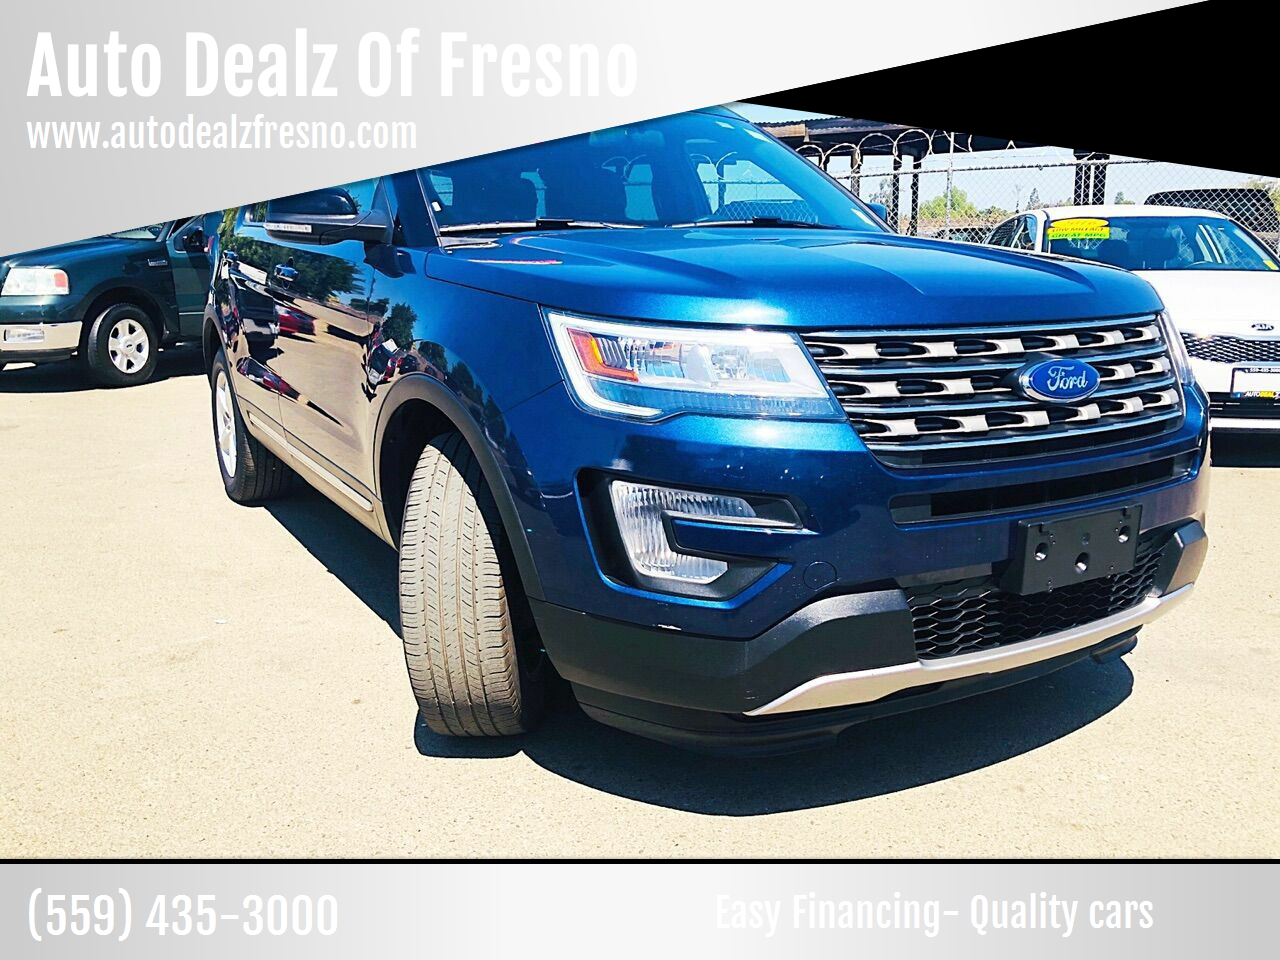 Pre-Owned 2017 Ford Explorer XLT AWD 4dr SUV